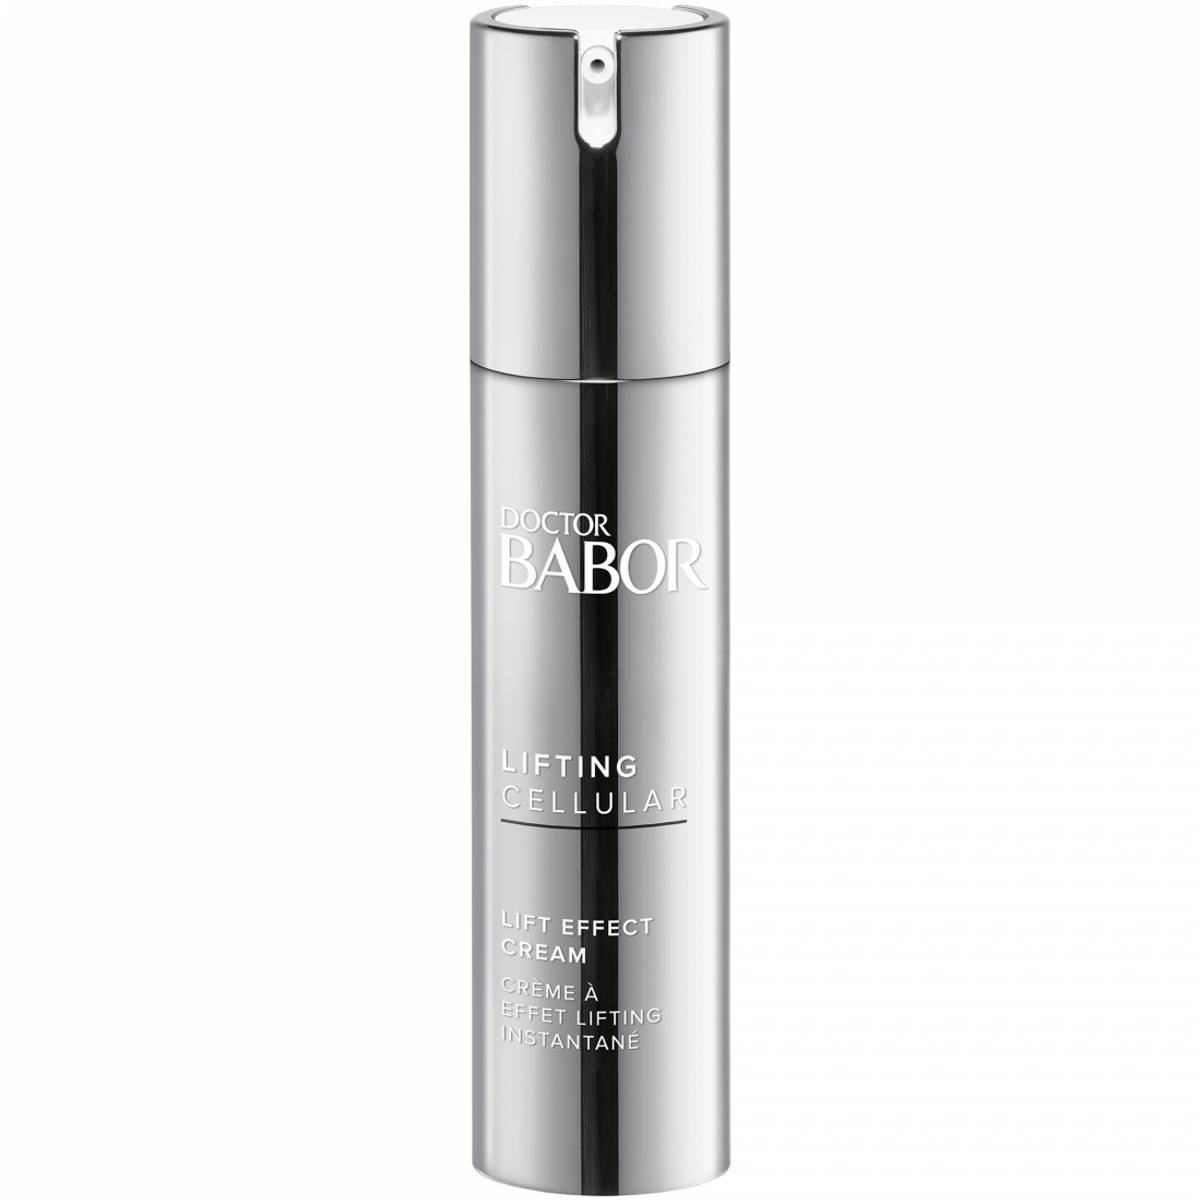 Babor Lifting Cellular Instant Lift Effect Cream 50ml